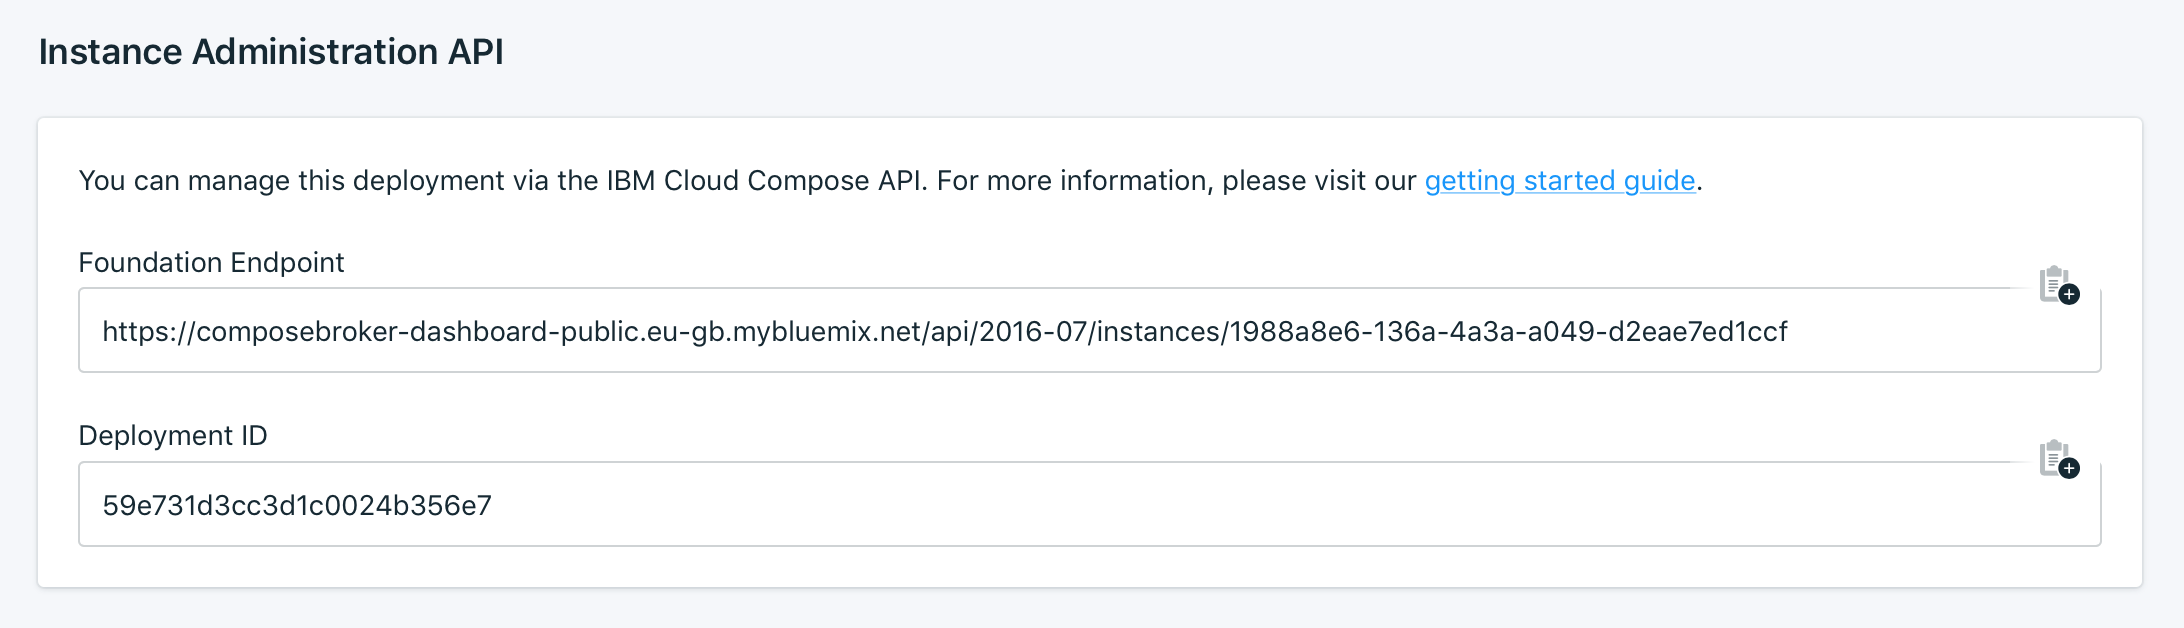 Instance Administration API Panel